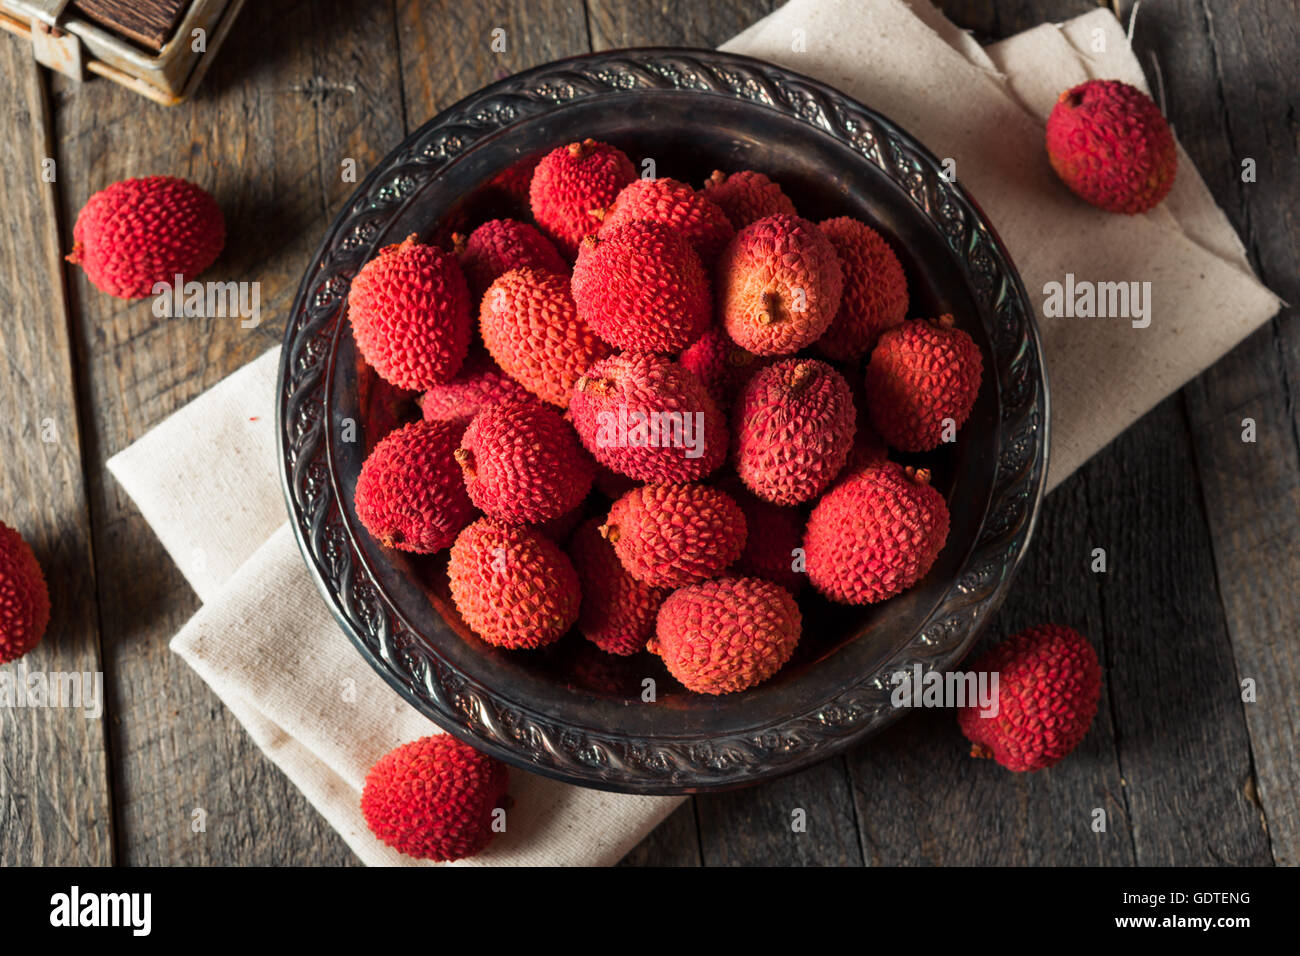 Raw Organic Red Lychee Berries Ready to Eat - Stock Image